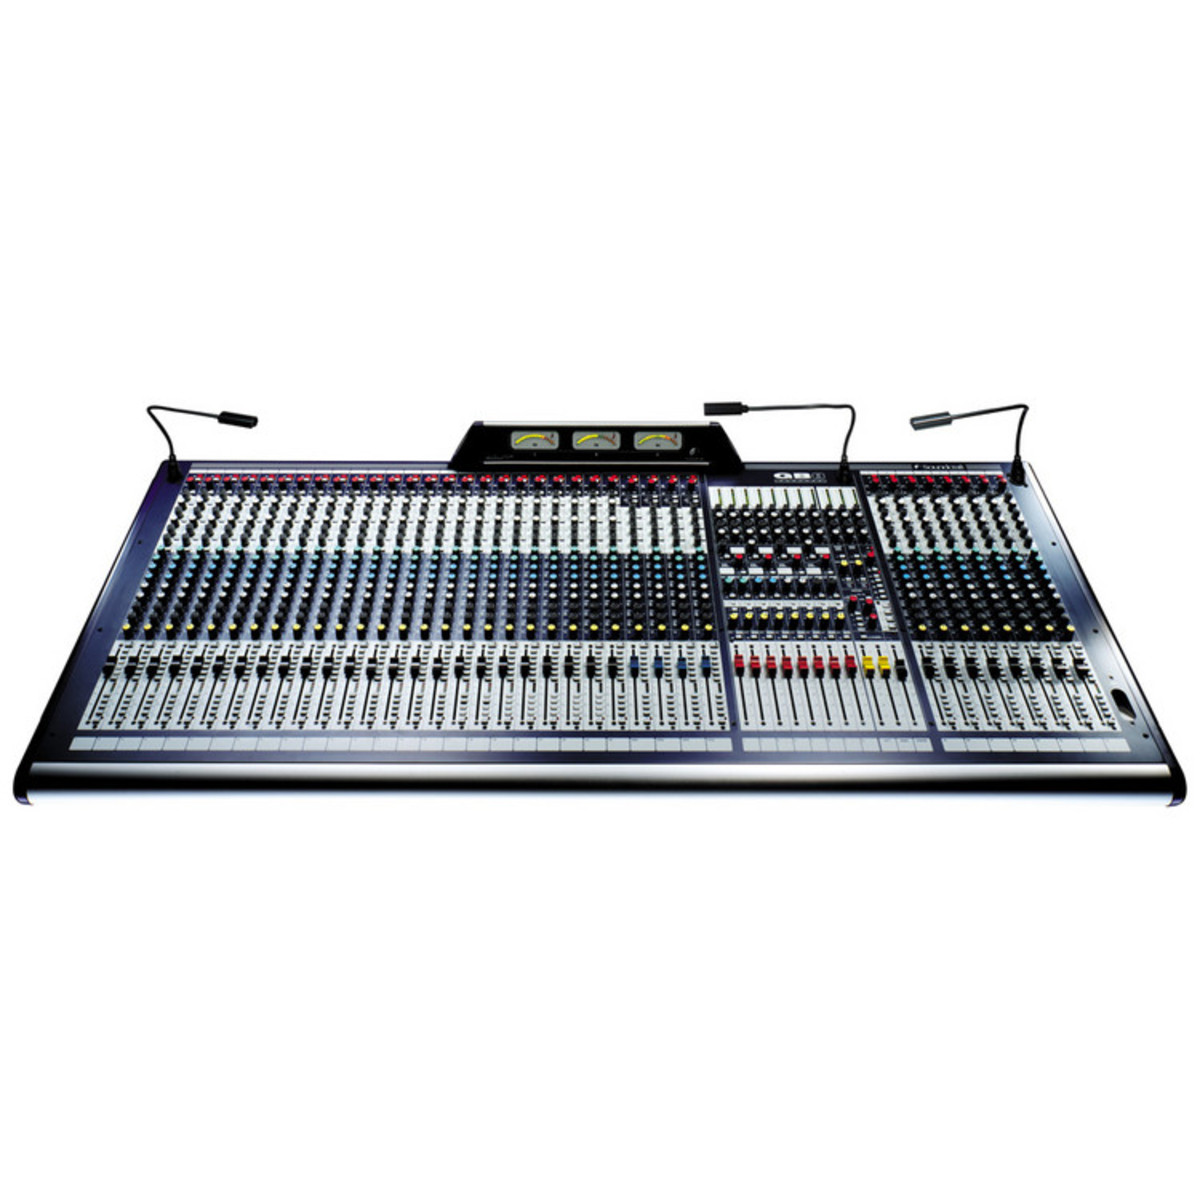 Soundcraft Gb8 24 24 Channel Mixer At Gear4music